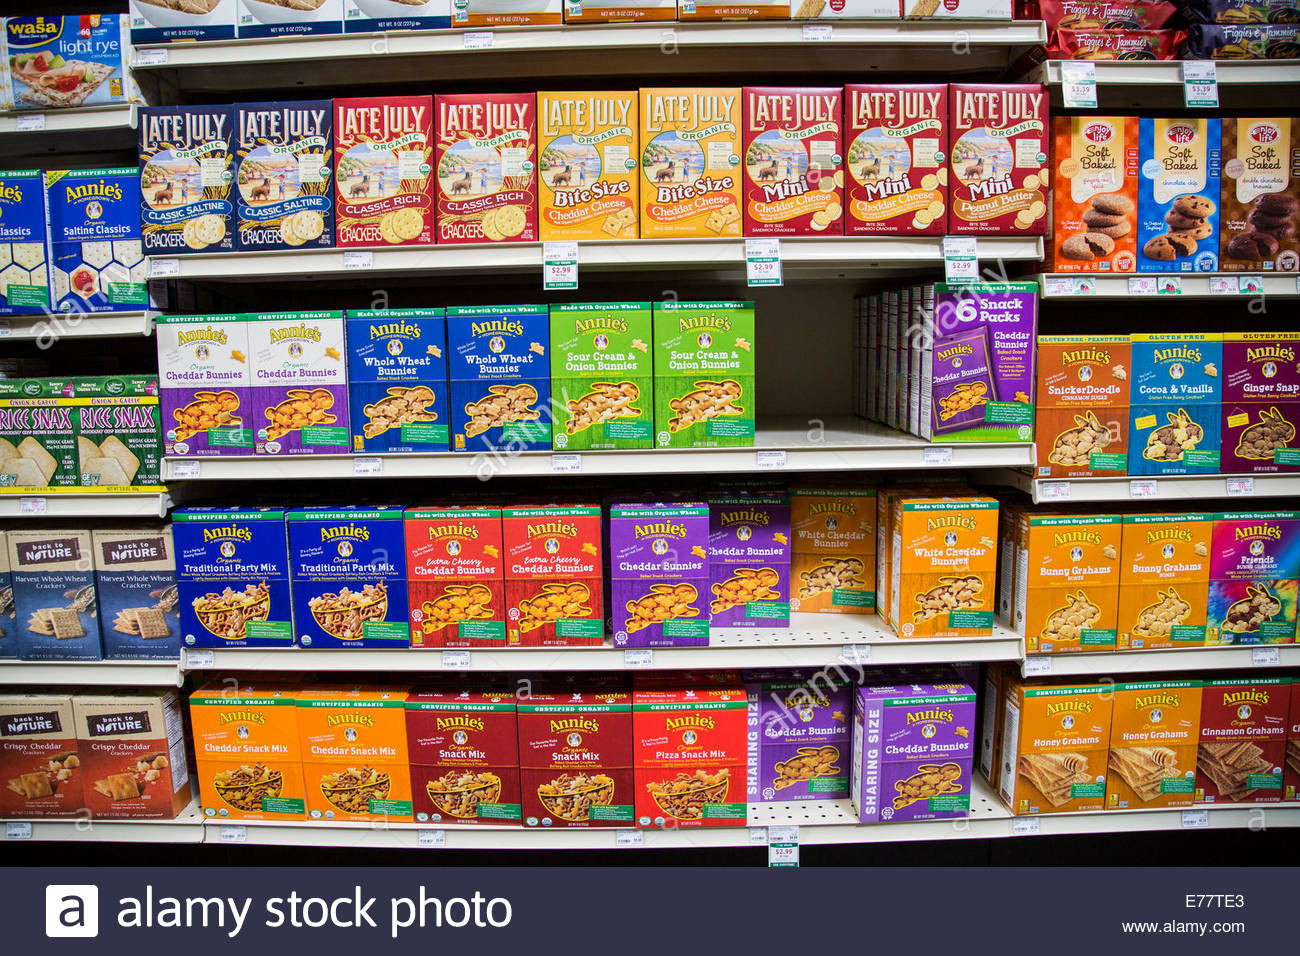 Healthy Snacks To Buy At Grocery Store  A natural foods grocery store aisle with shelves of